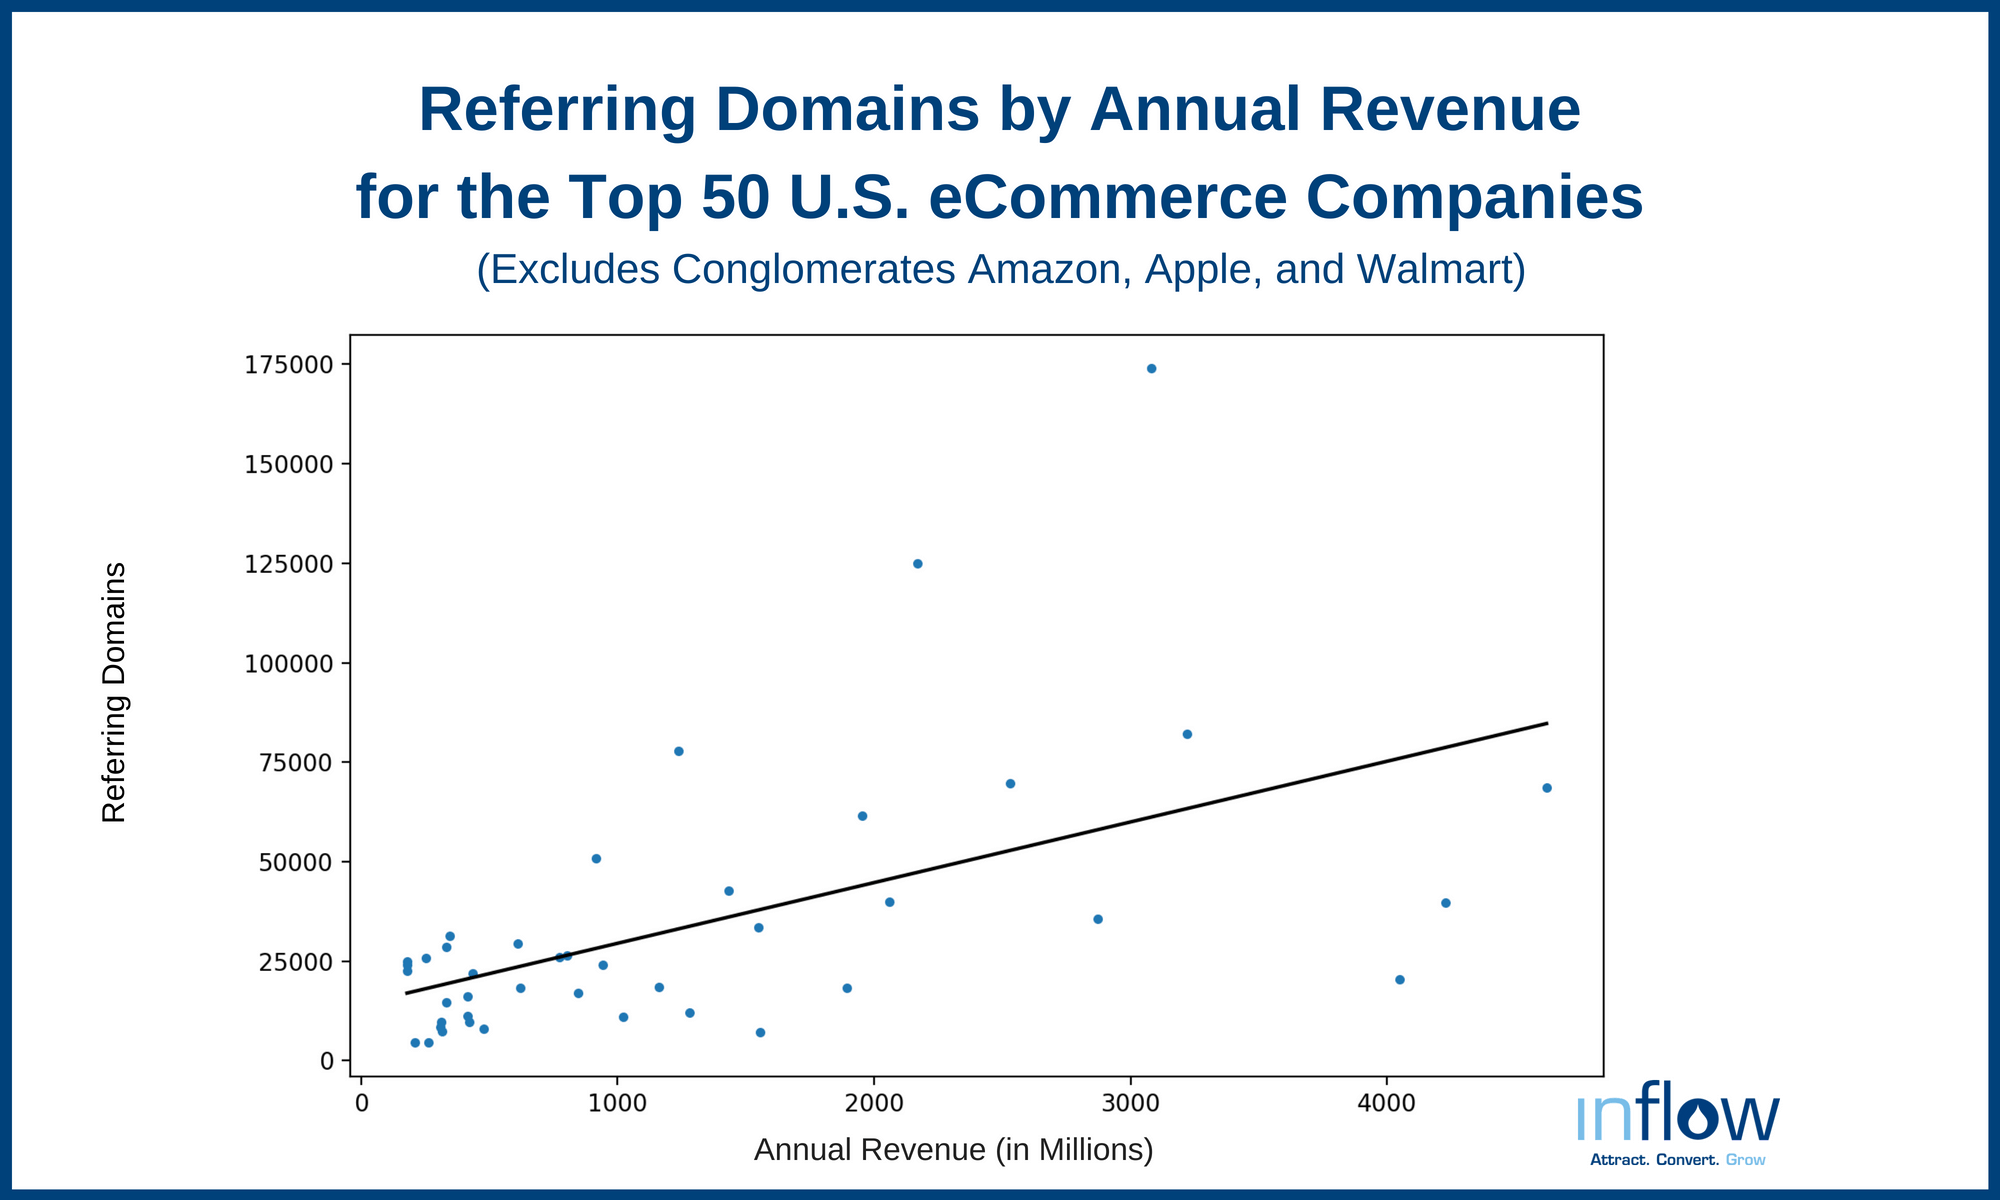 Referring Domains by Annual Revenue for the Top 50 U.S. eCommerce Companies